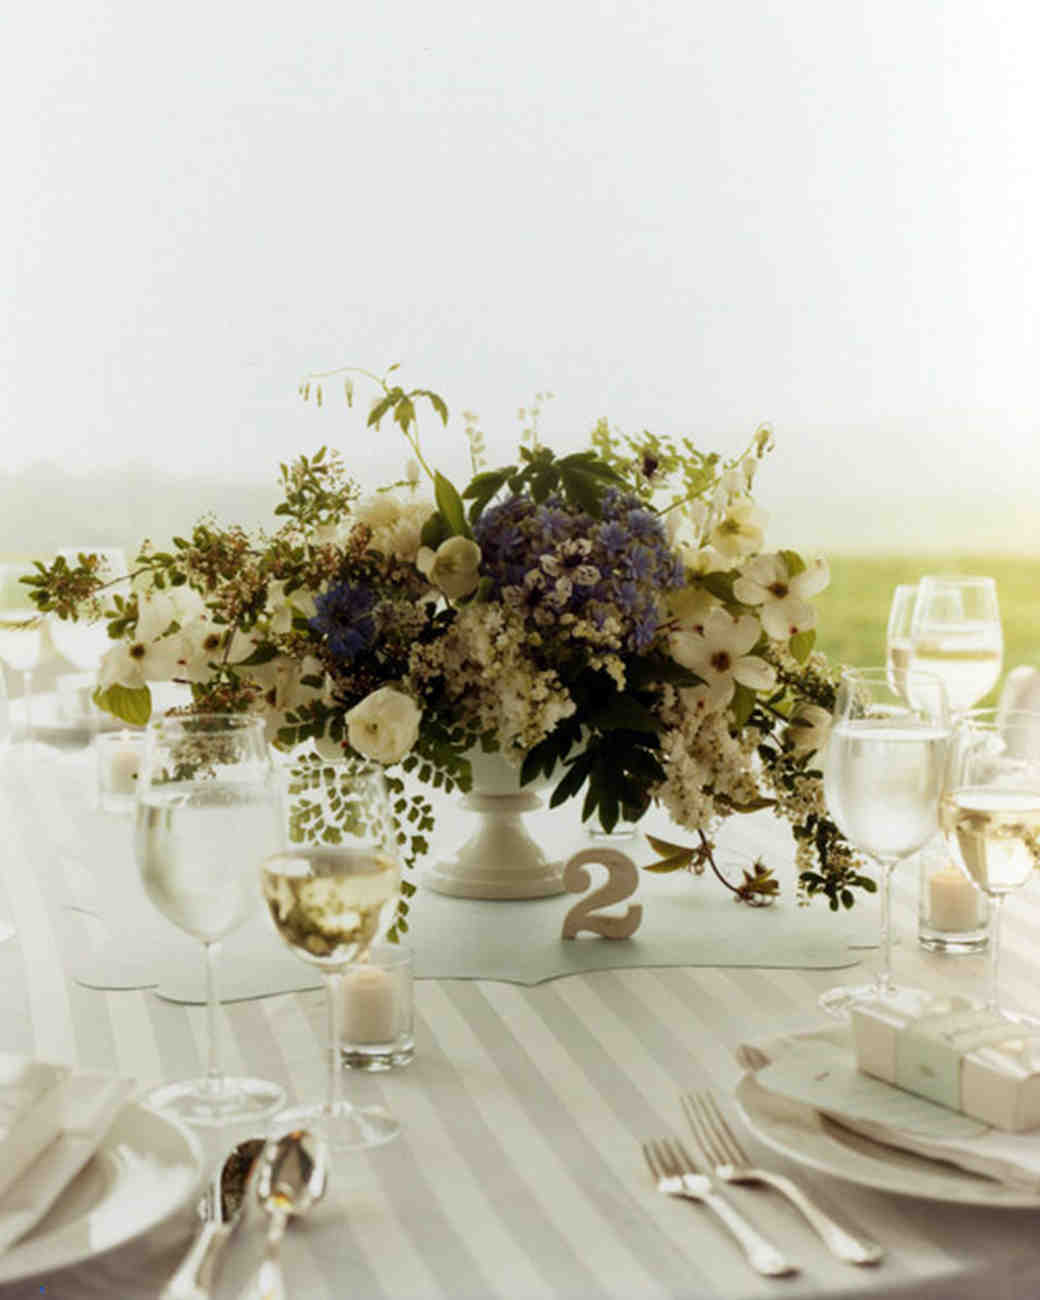 Affordable Wedding Centerpieces That Don't Look Cheap | Martha ...